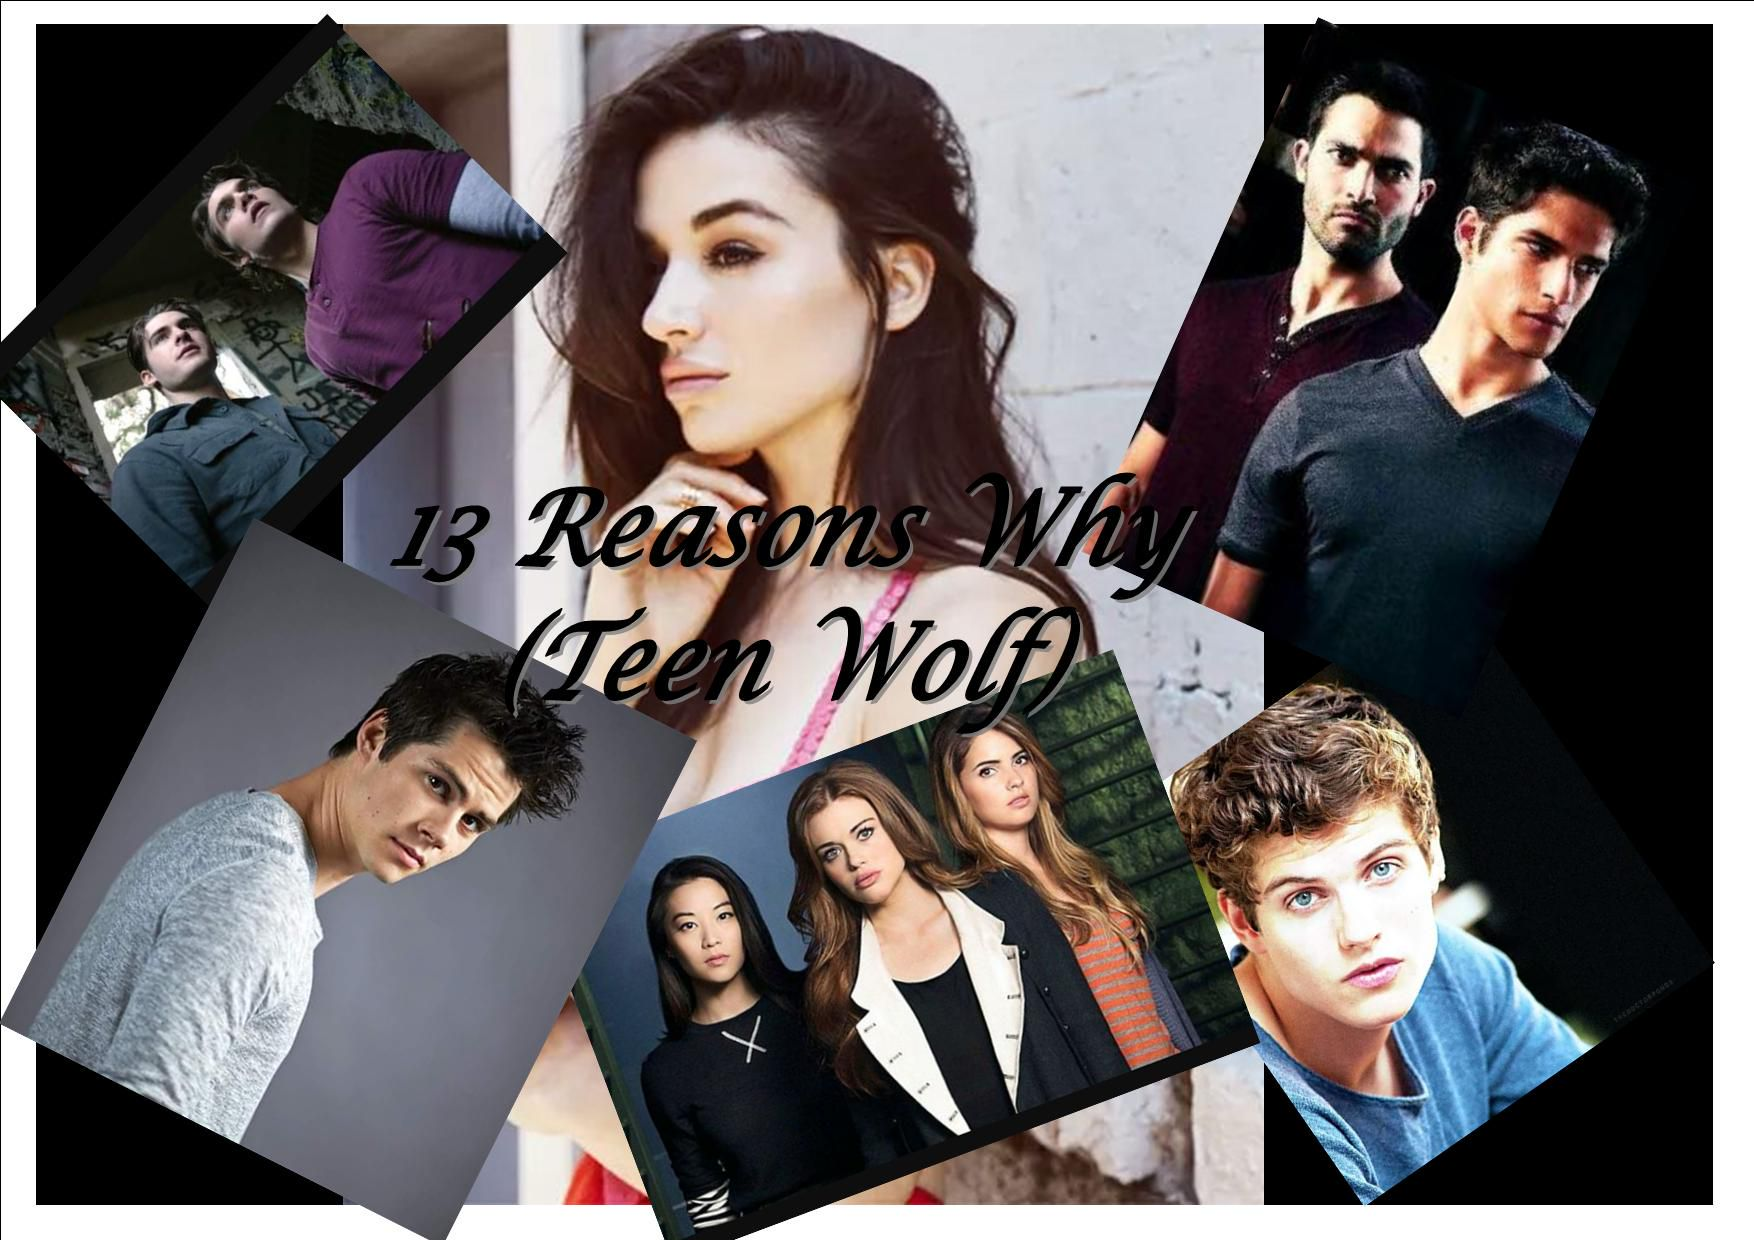 13 reasons why teen wolf casting wattpad kristyandbryce Image collections